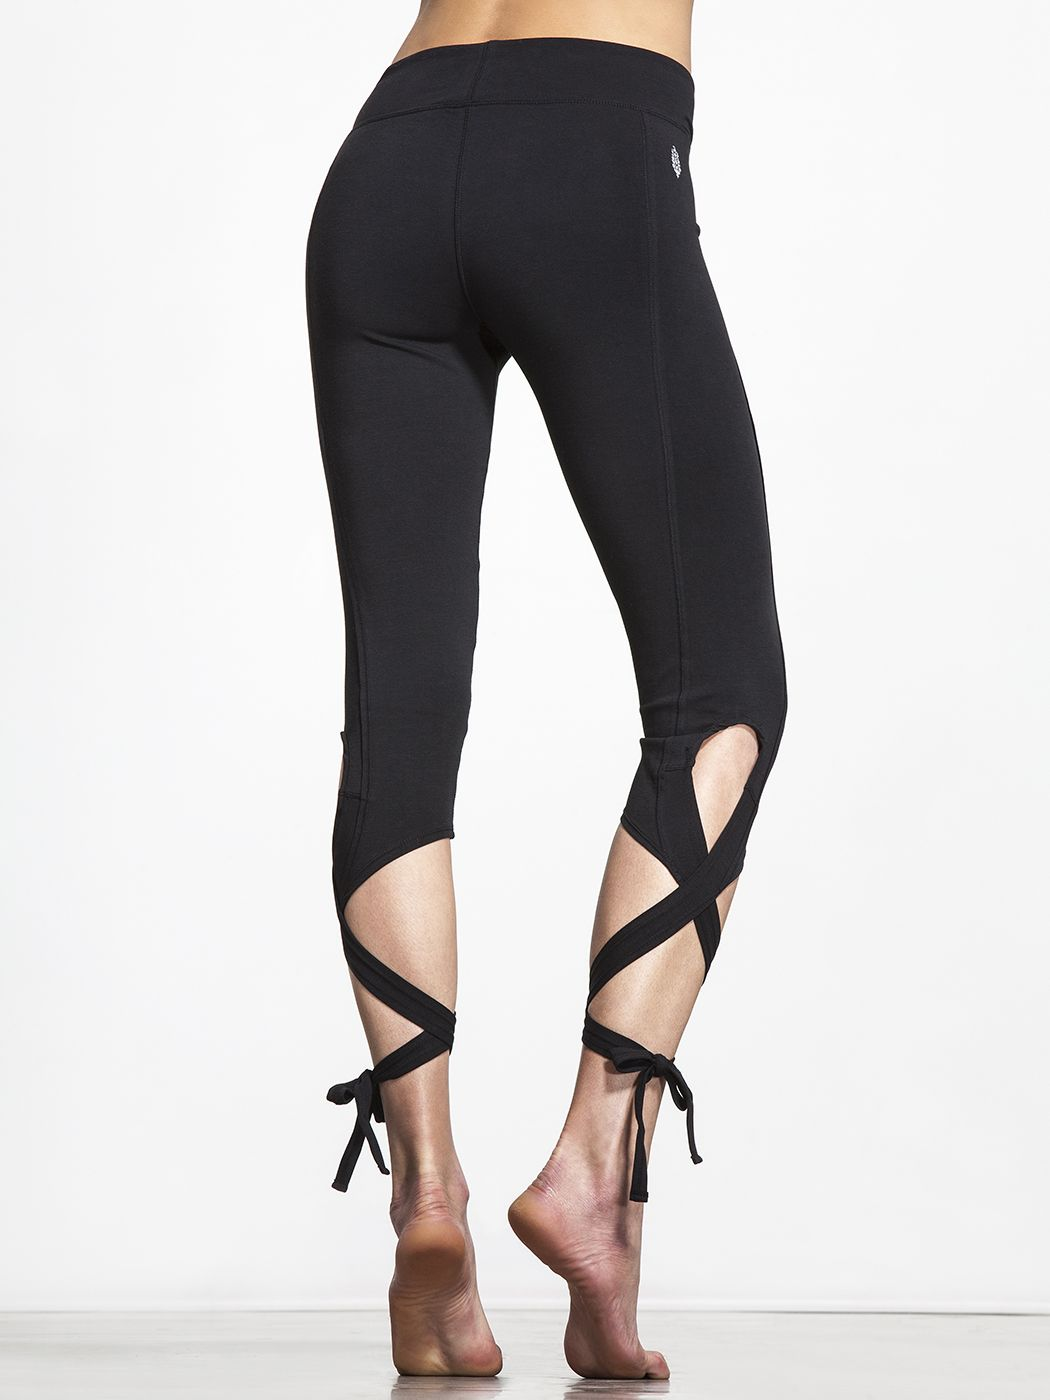 5eed87df5e Upgrade your legging game with these high-performance leggings from Free  People Move. The showstopper is the versatile ties on each calf, allowing  you to ...